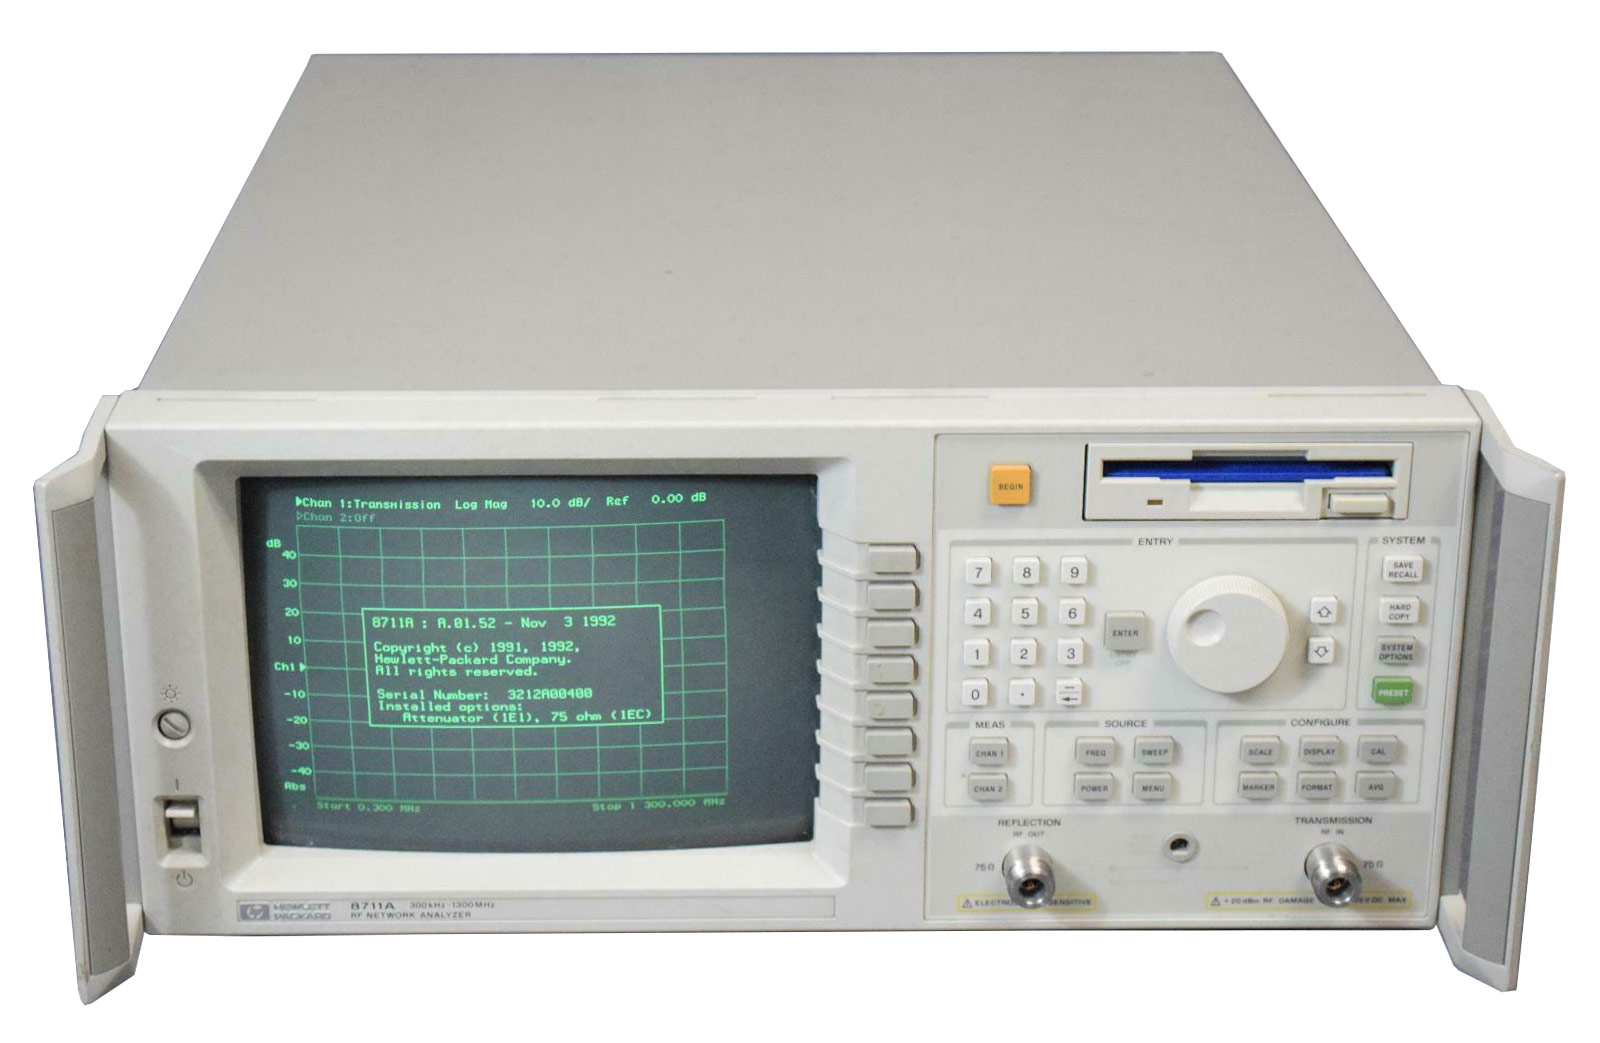 Rent, Buy, or Lease the Agilent 8711A Network Analyzer | 300 kHz - 1.3 GHz - Advanced Test Equipment Rentals | Call 1-800-404-ATEC(2832) for pricing…